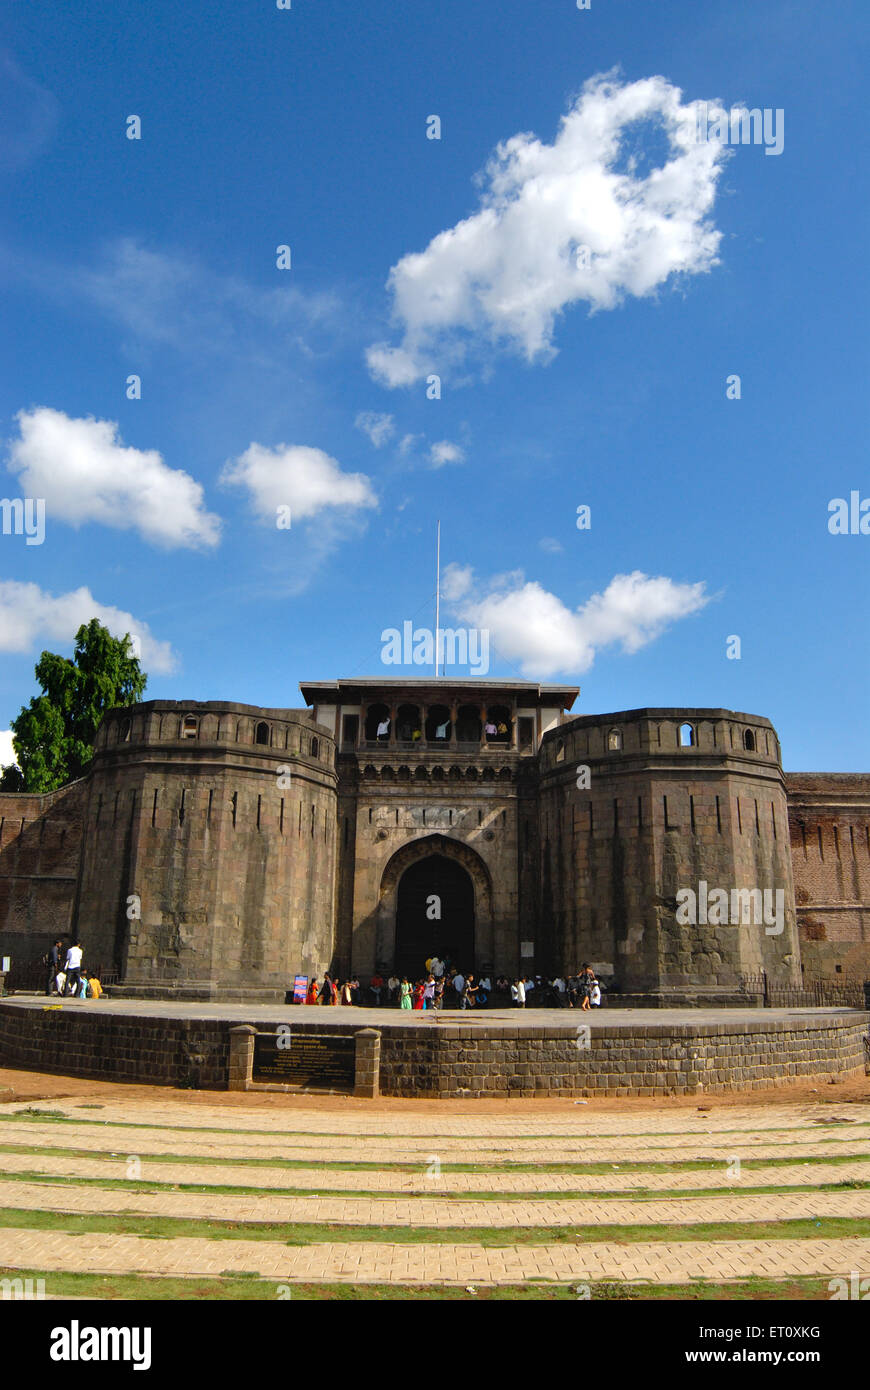 Delhi darwaja with massive bastion at shanwarwada shaniwarwada ; Pune ; Maharashtra ; India - Stock Image